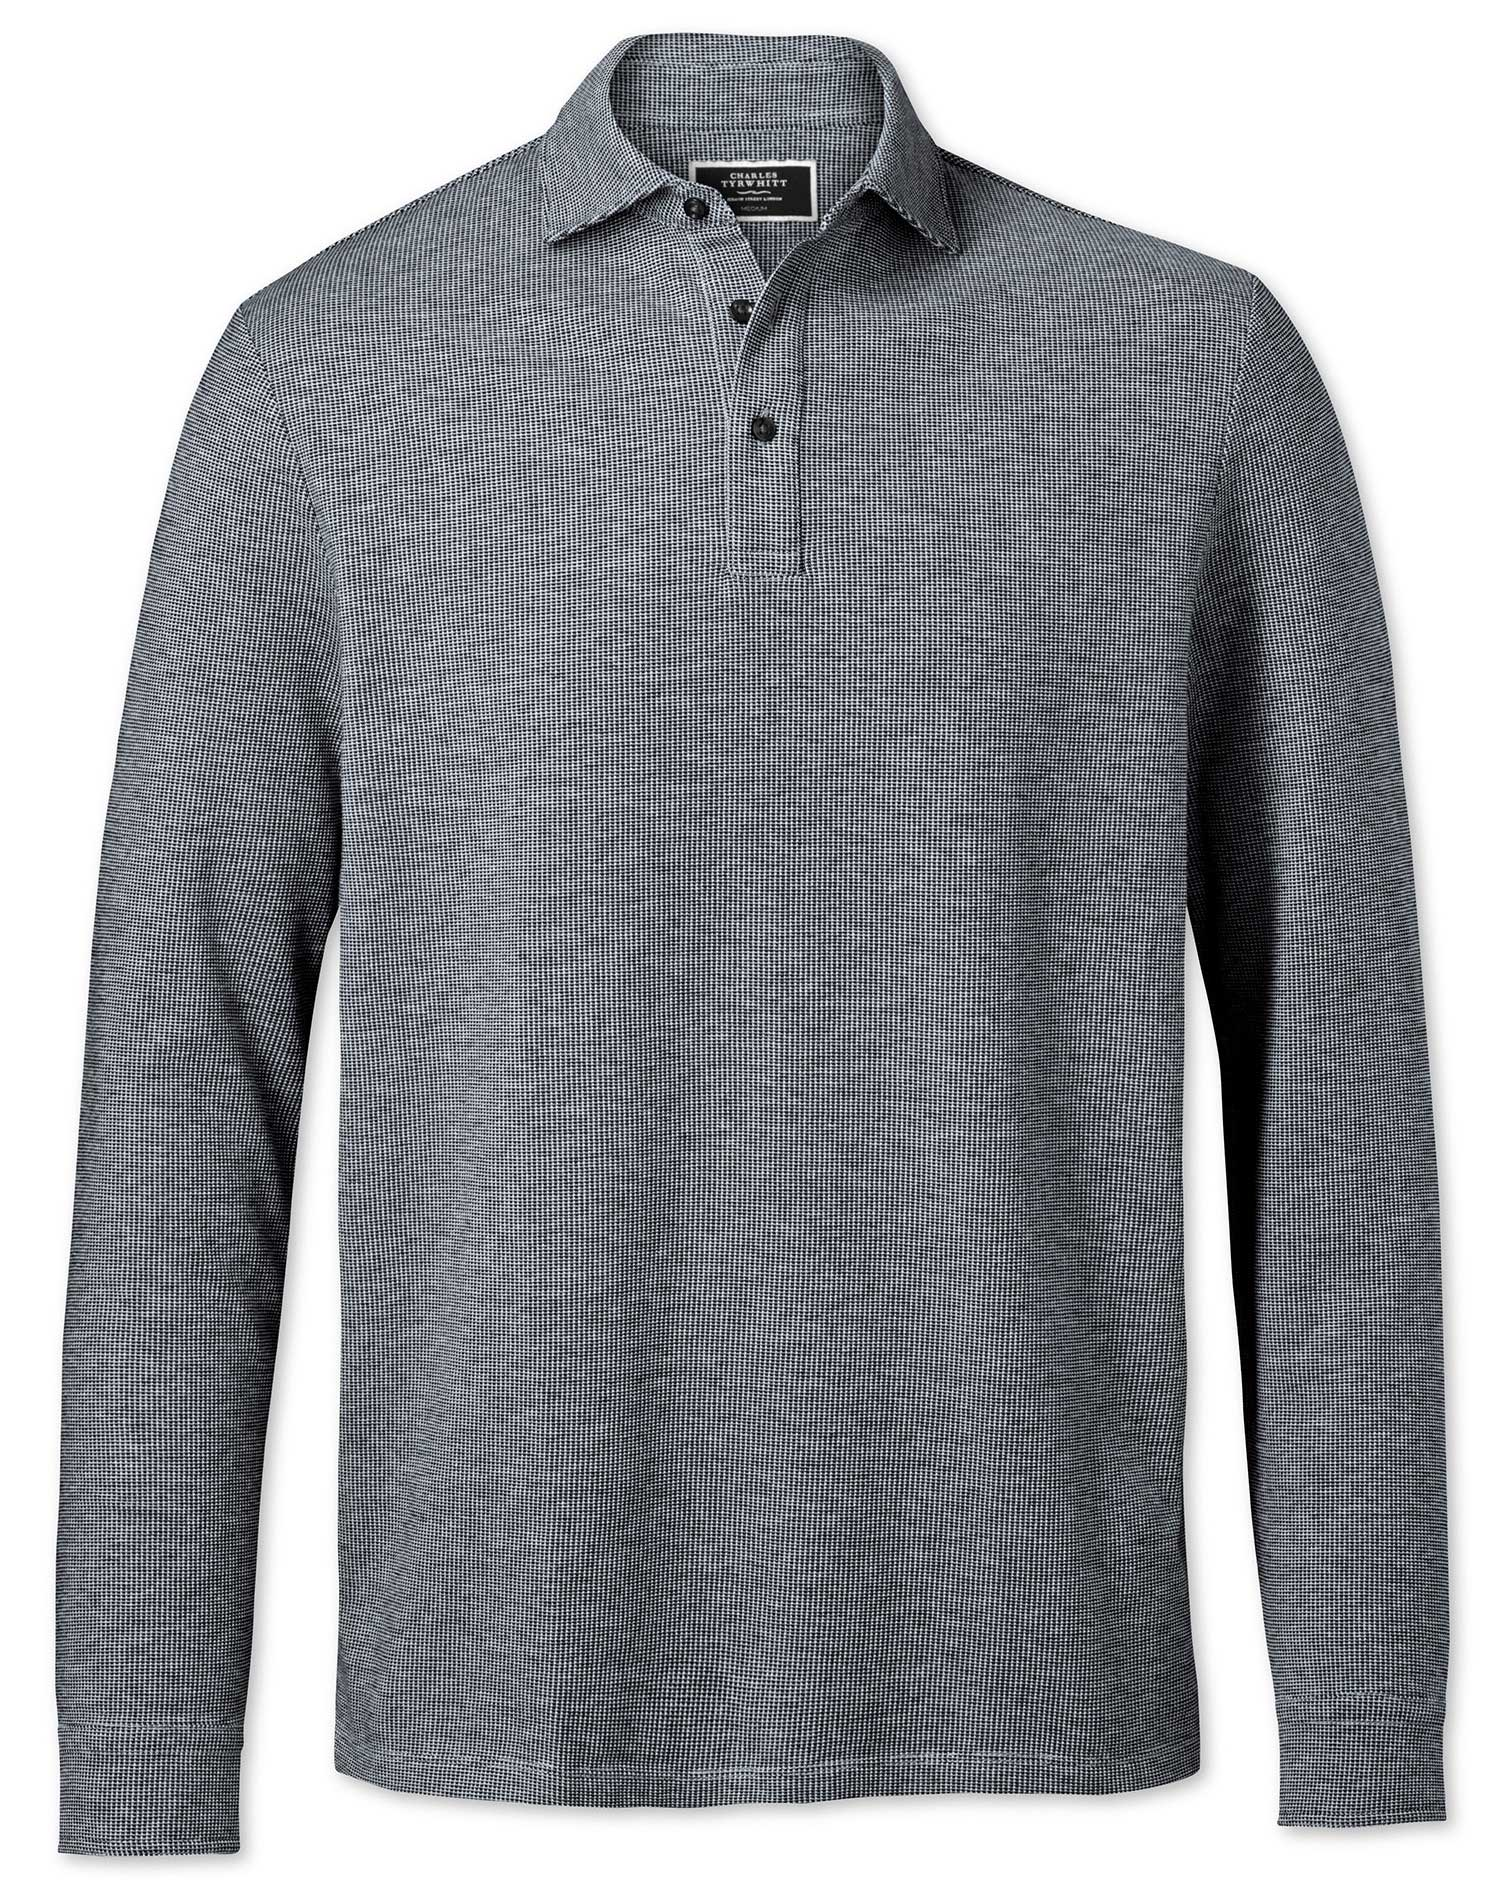 Black and White Long Sleeve Textured Cotton Polo Size Large by Charles Tyrwhitt